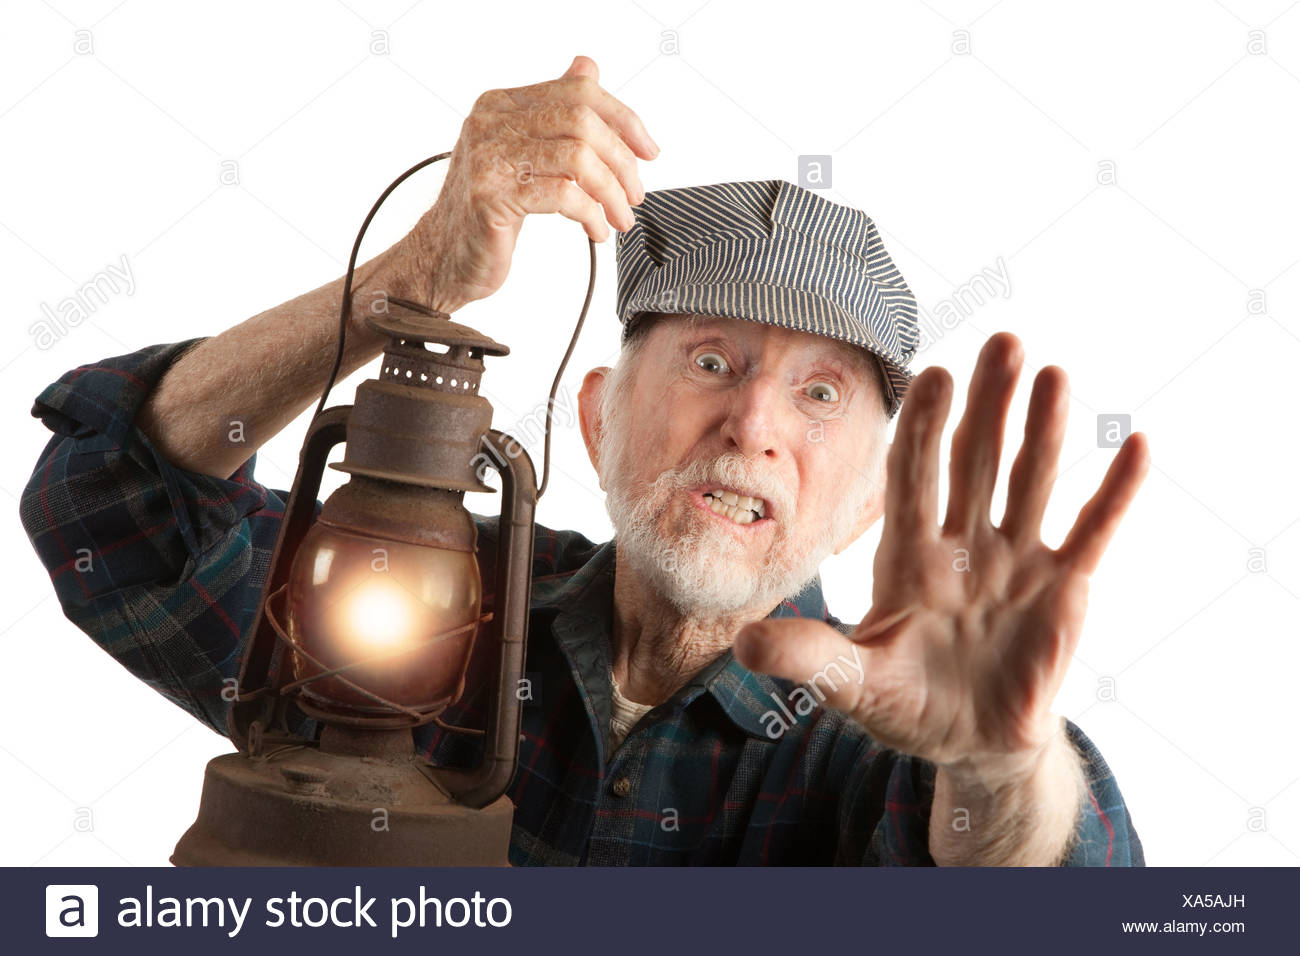 Apprehensive railroad man holding a glowing red lantern. - Stock Image